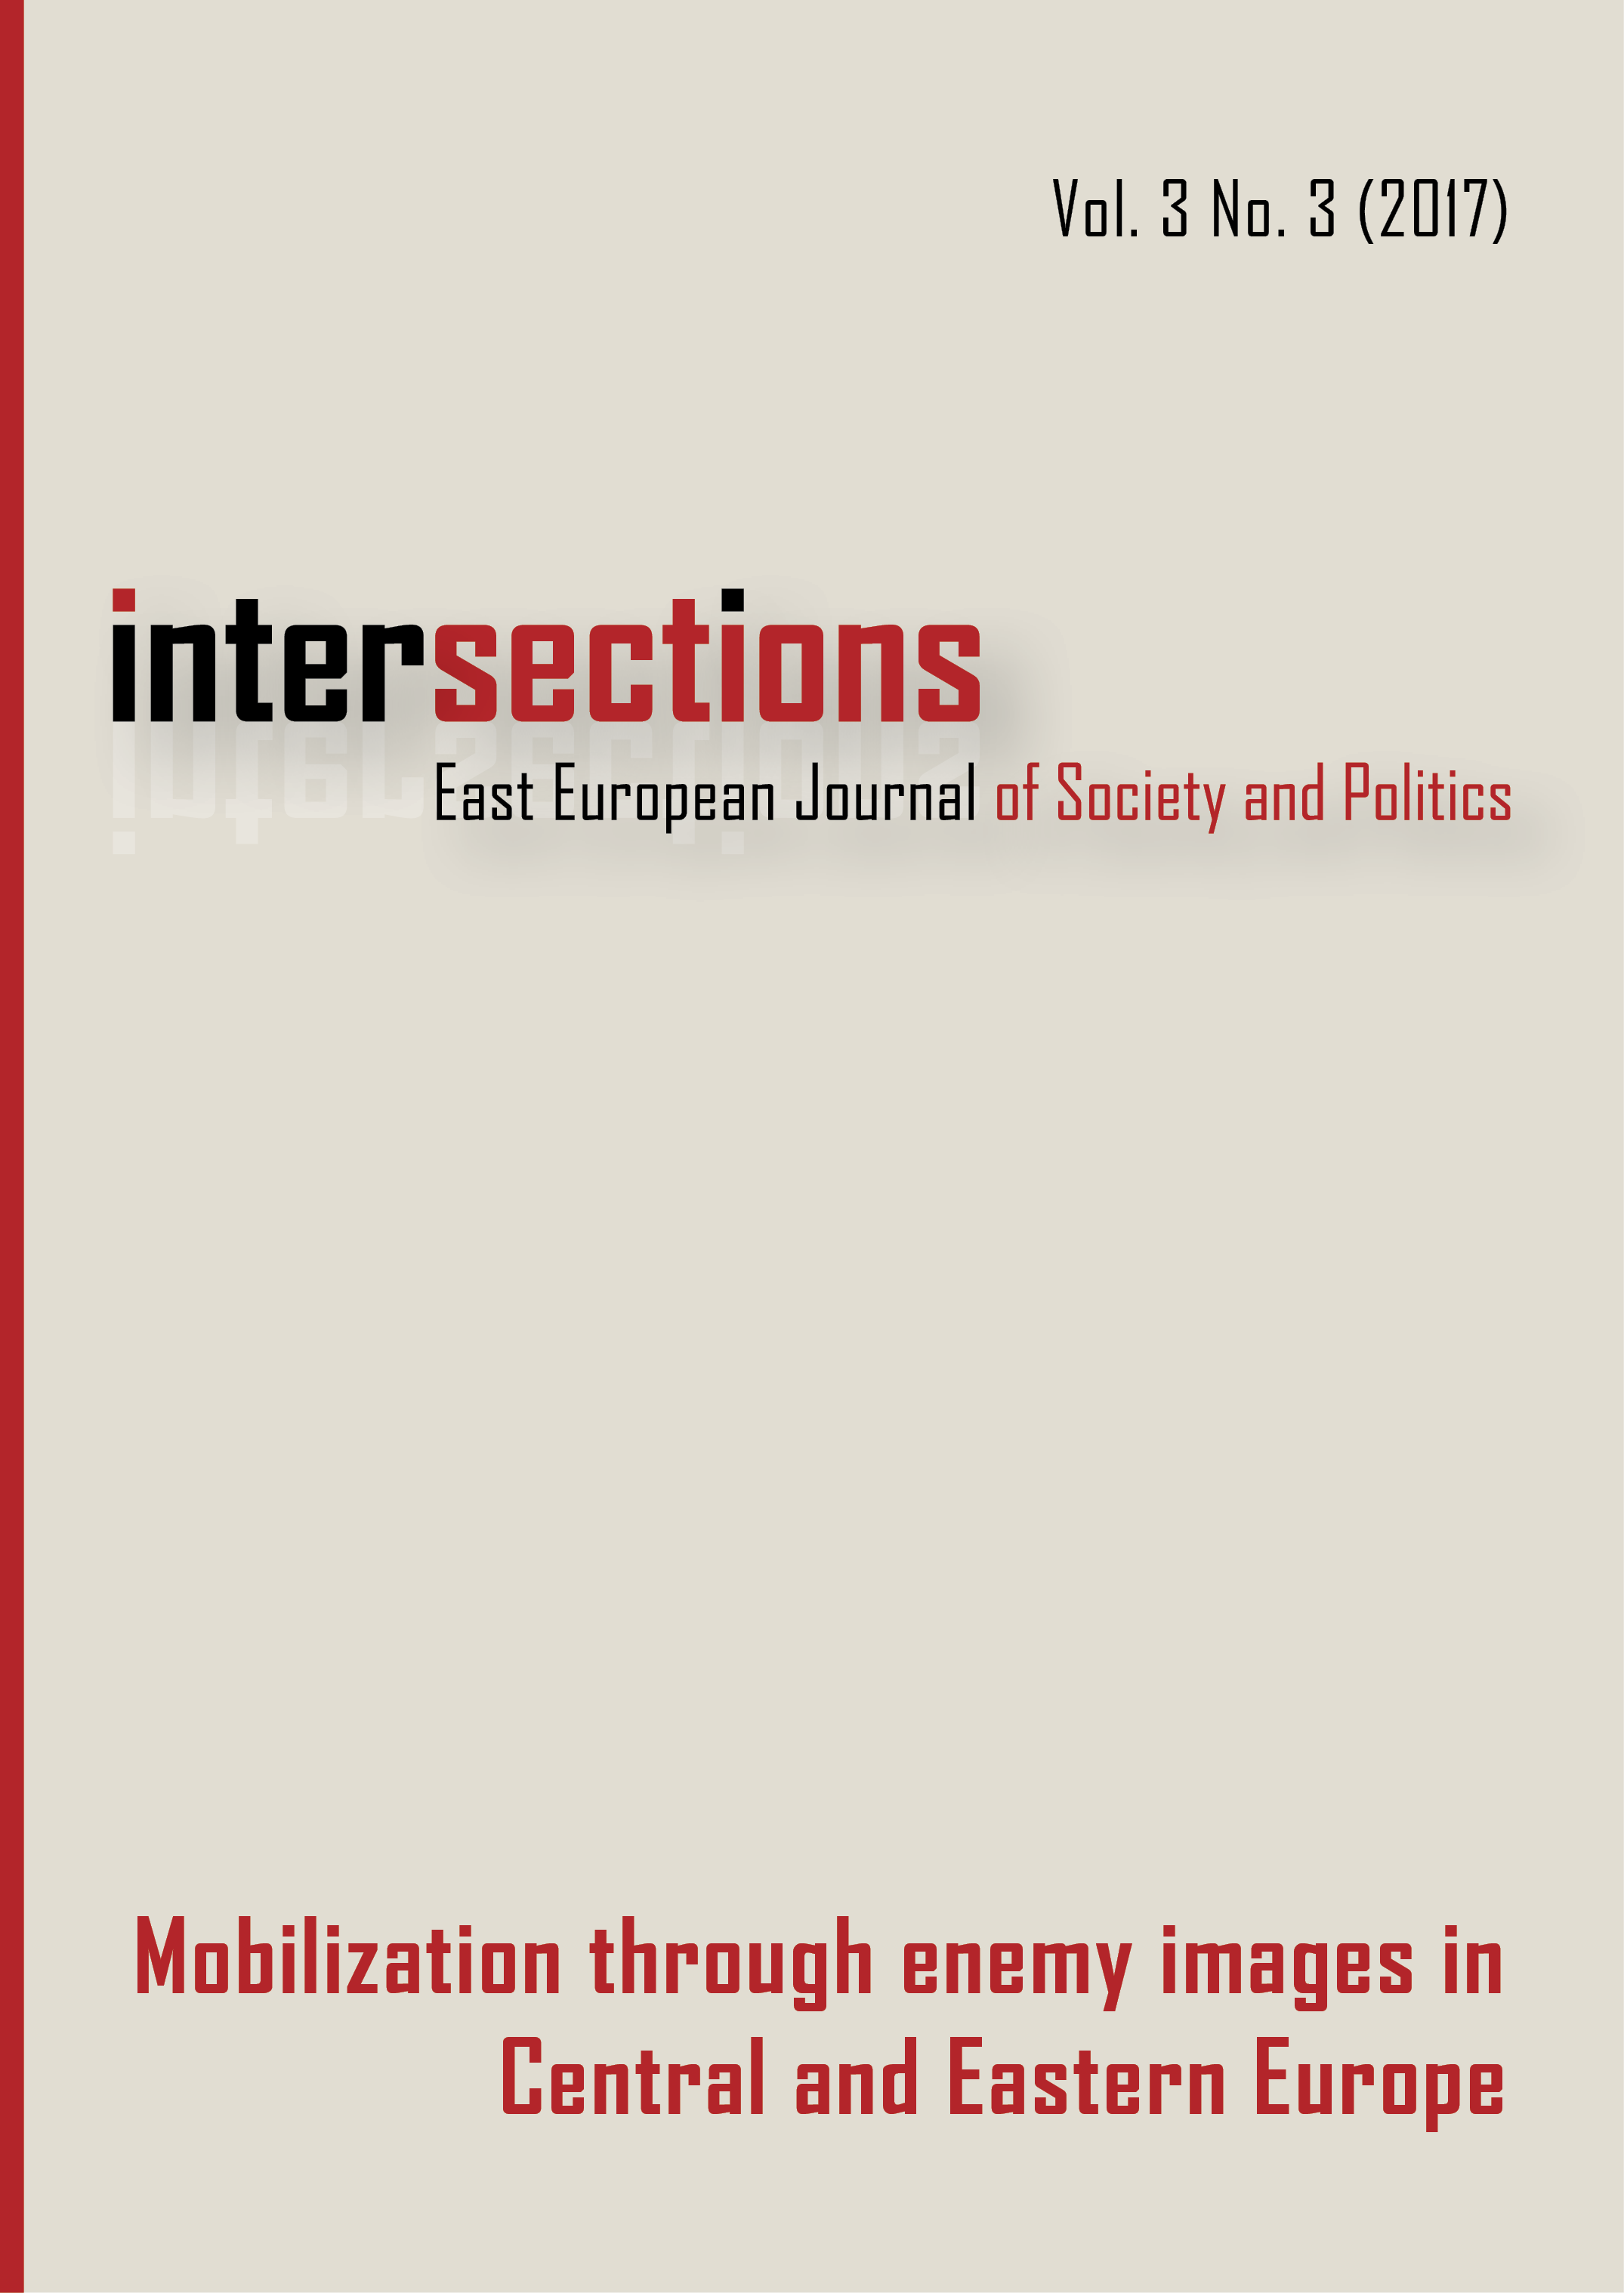 View Vol. 3 No. 3 (2017): Mobilization through Enemy Images in Central and Eastern Europe